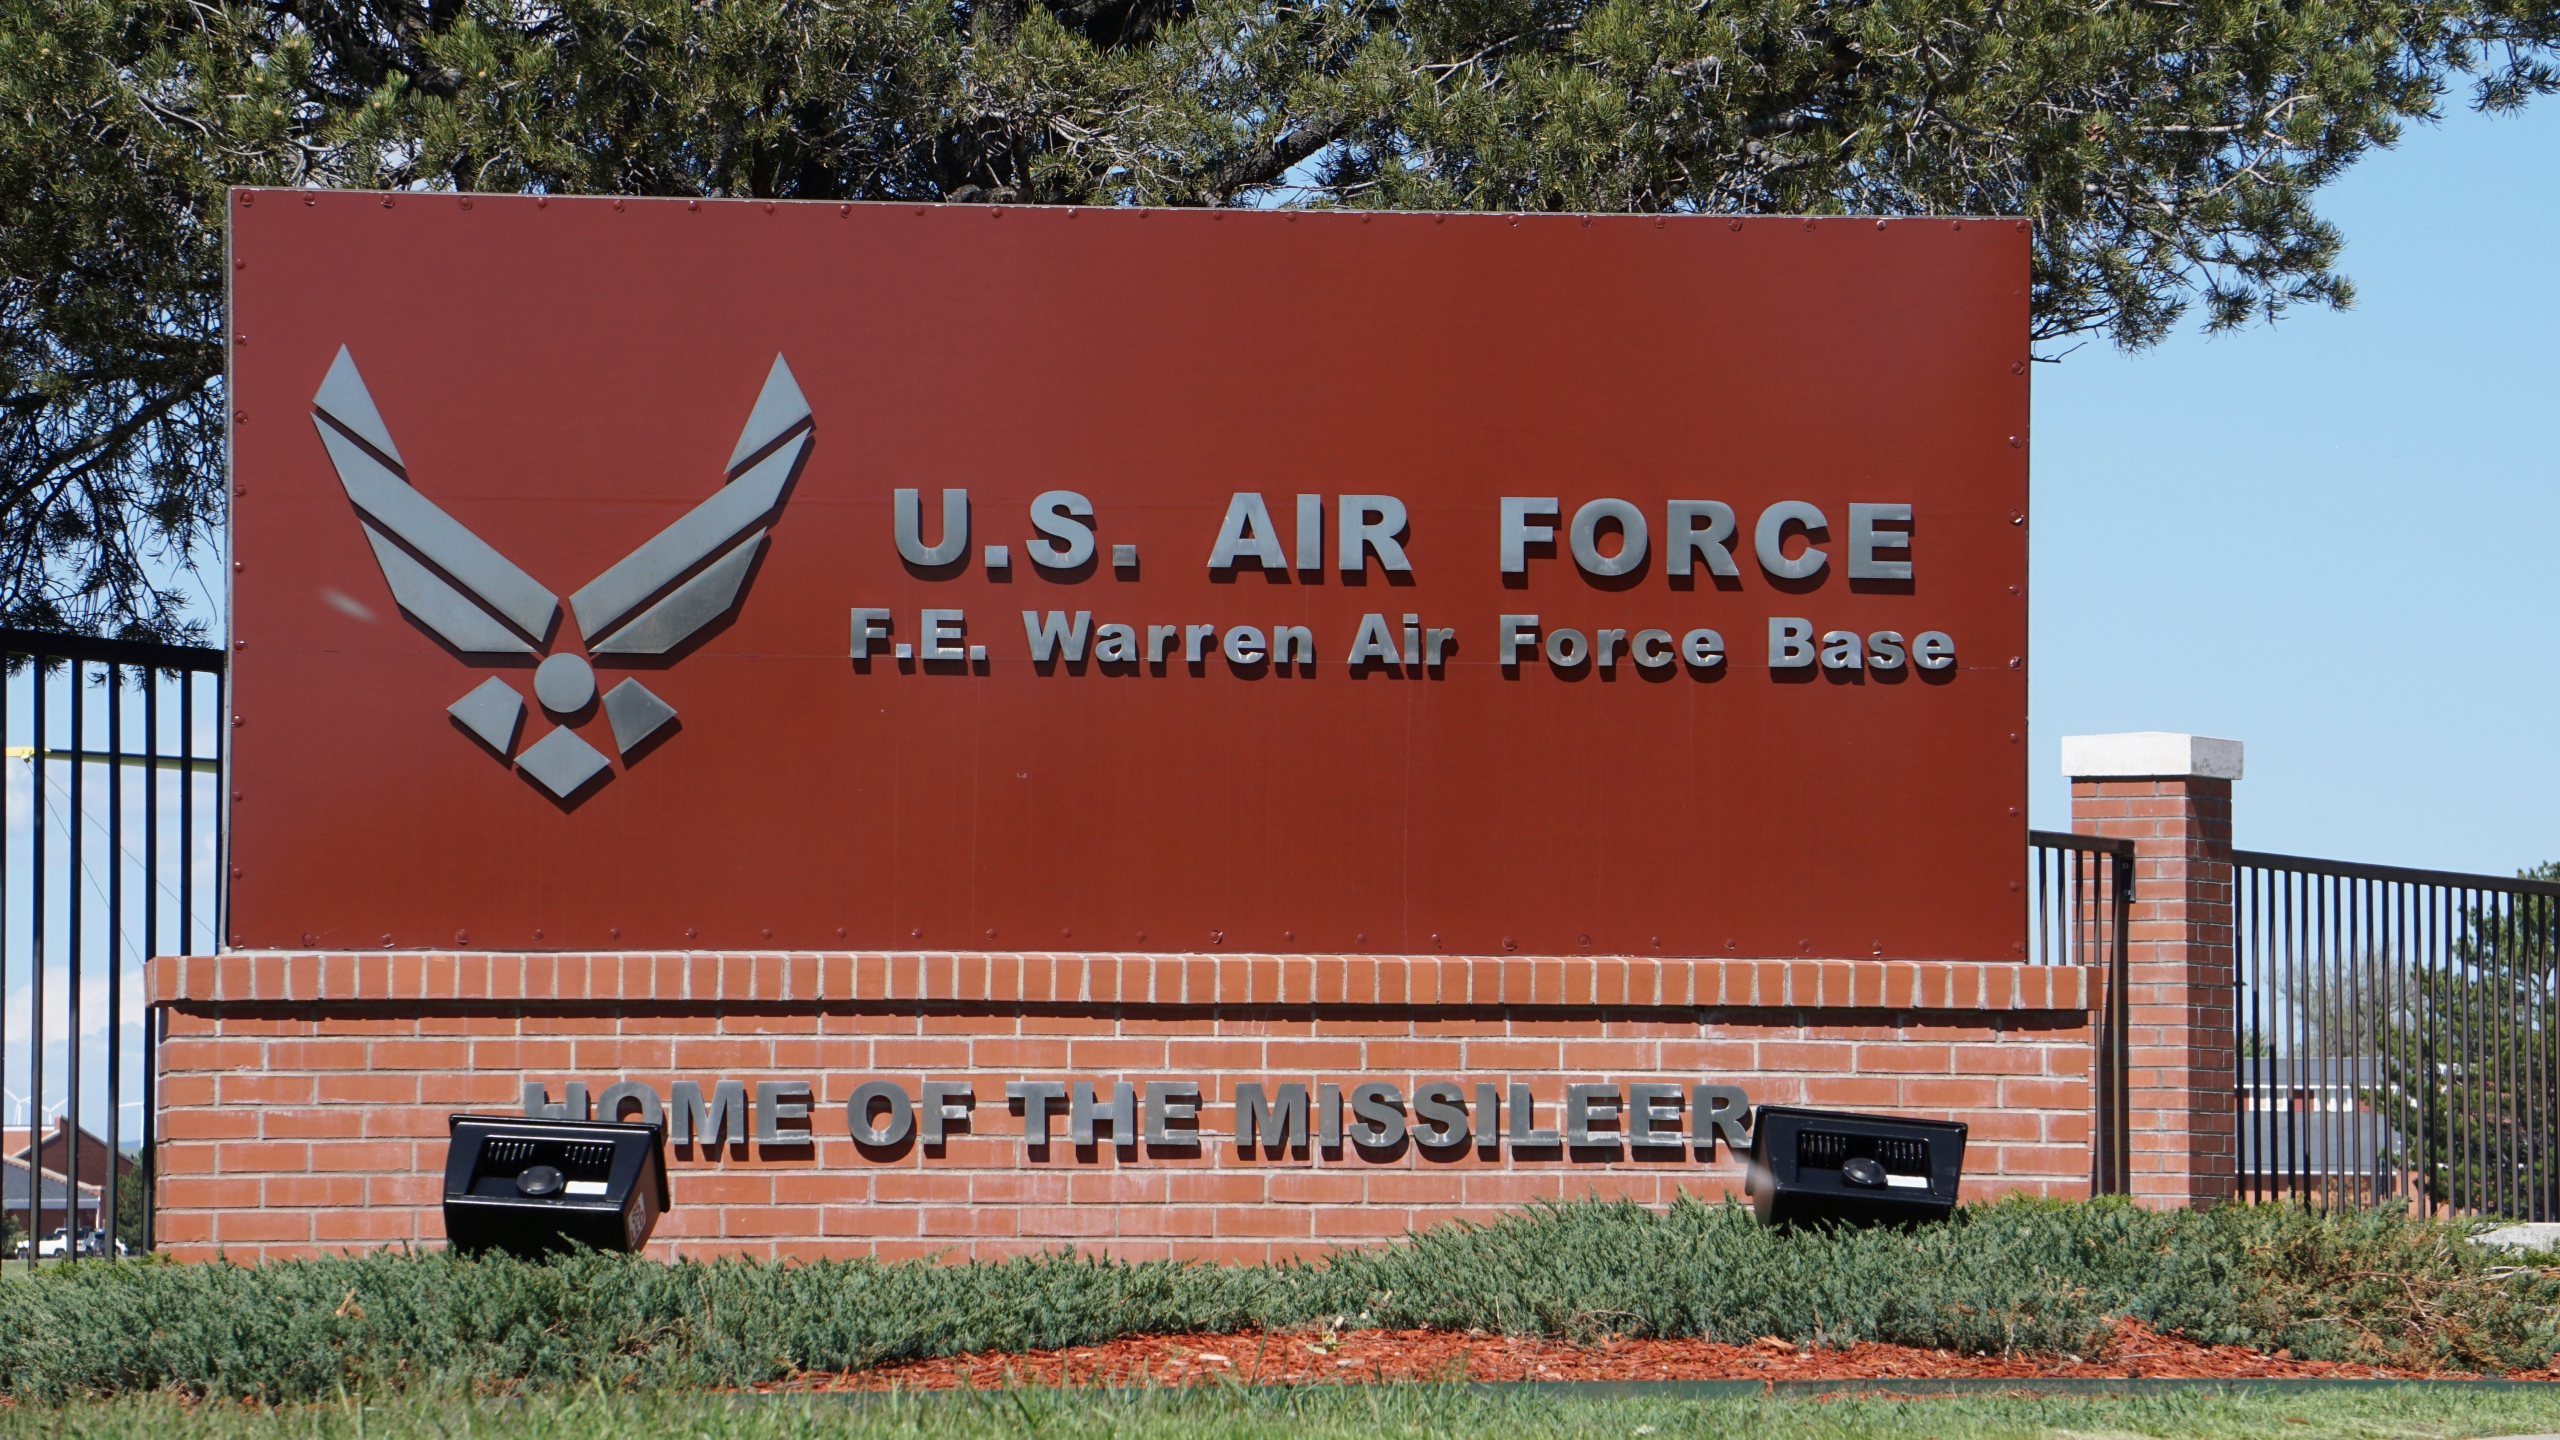 FILE - This May 24, 2108, file photo shows the entrance to F.E. Warren Air Force Base in Cheyenne, Wyo. (AP Photo/Mead Gruver, File)